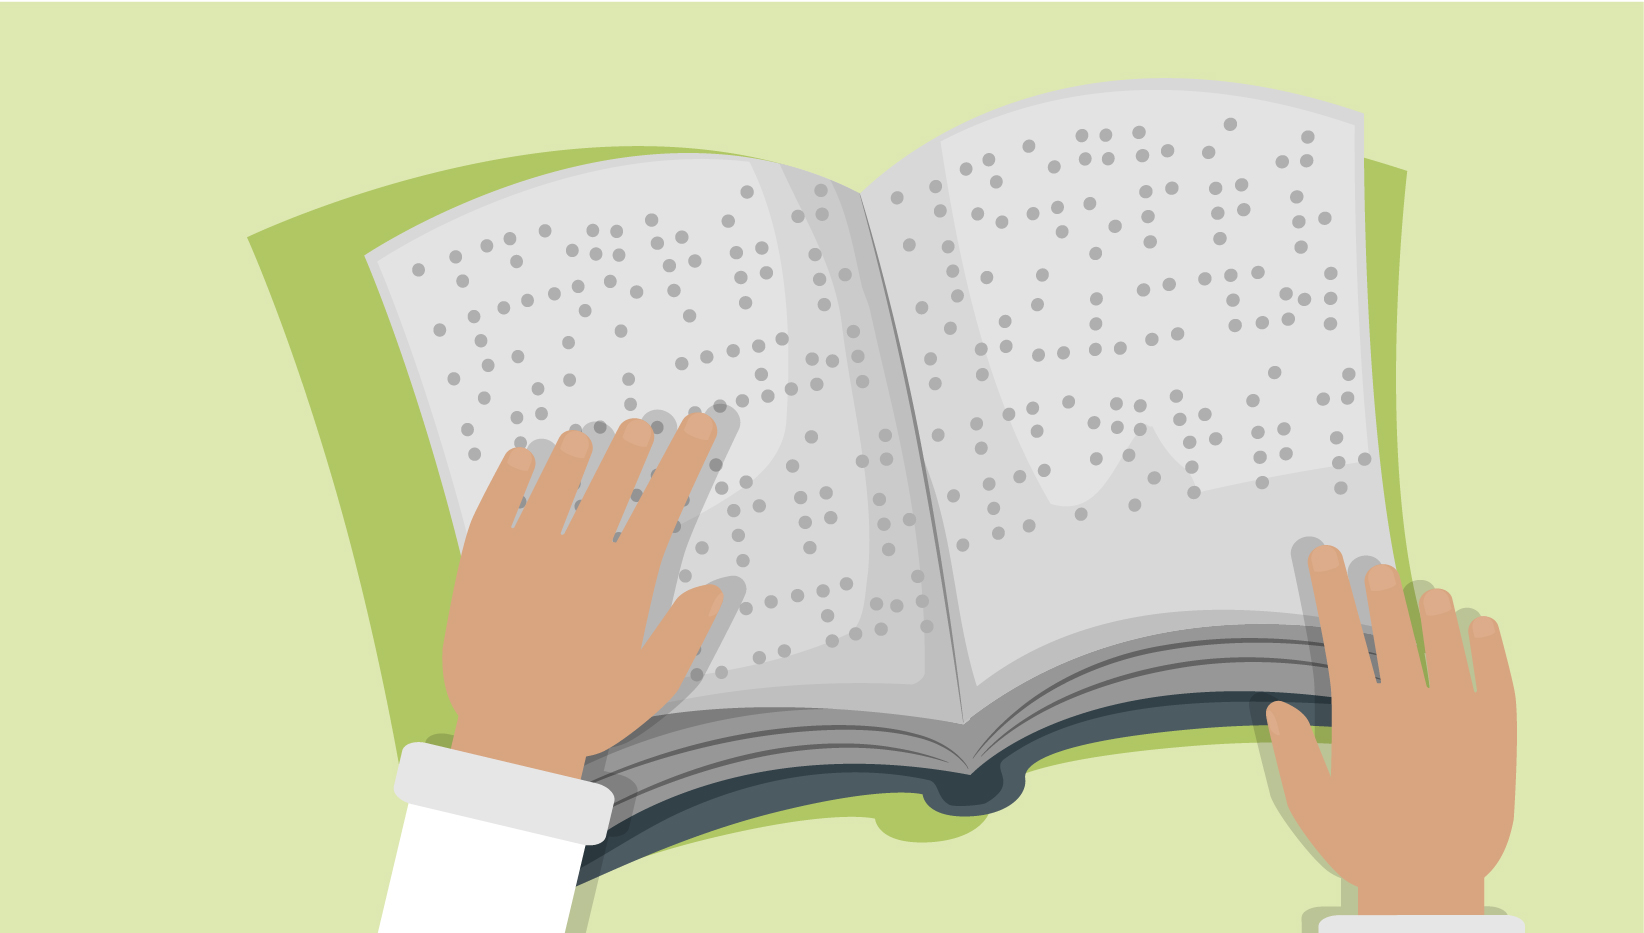 a book printed in braille with two hands resting on it